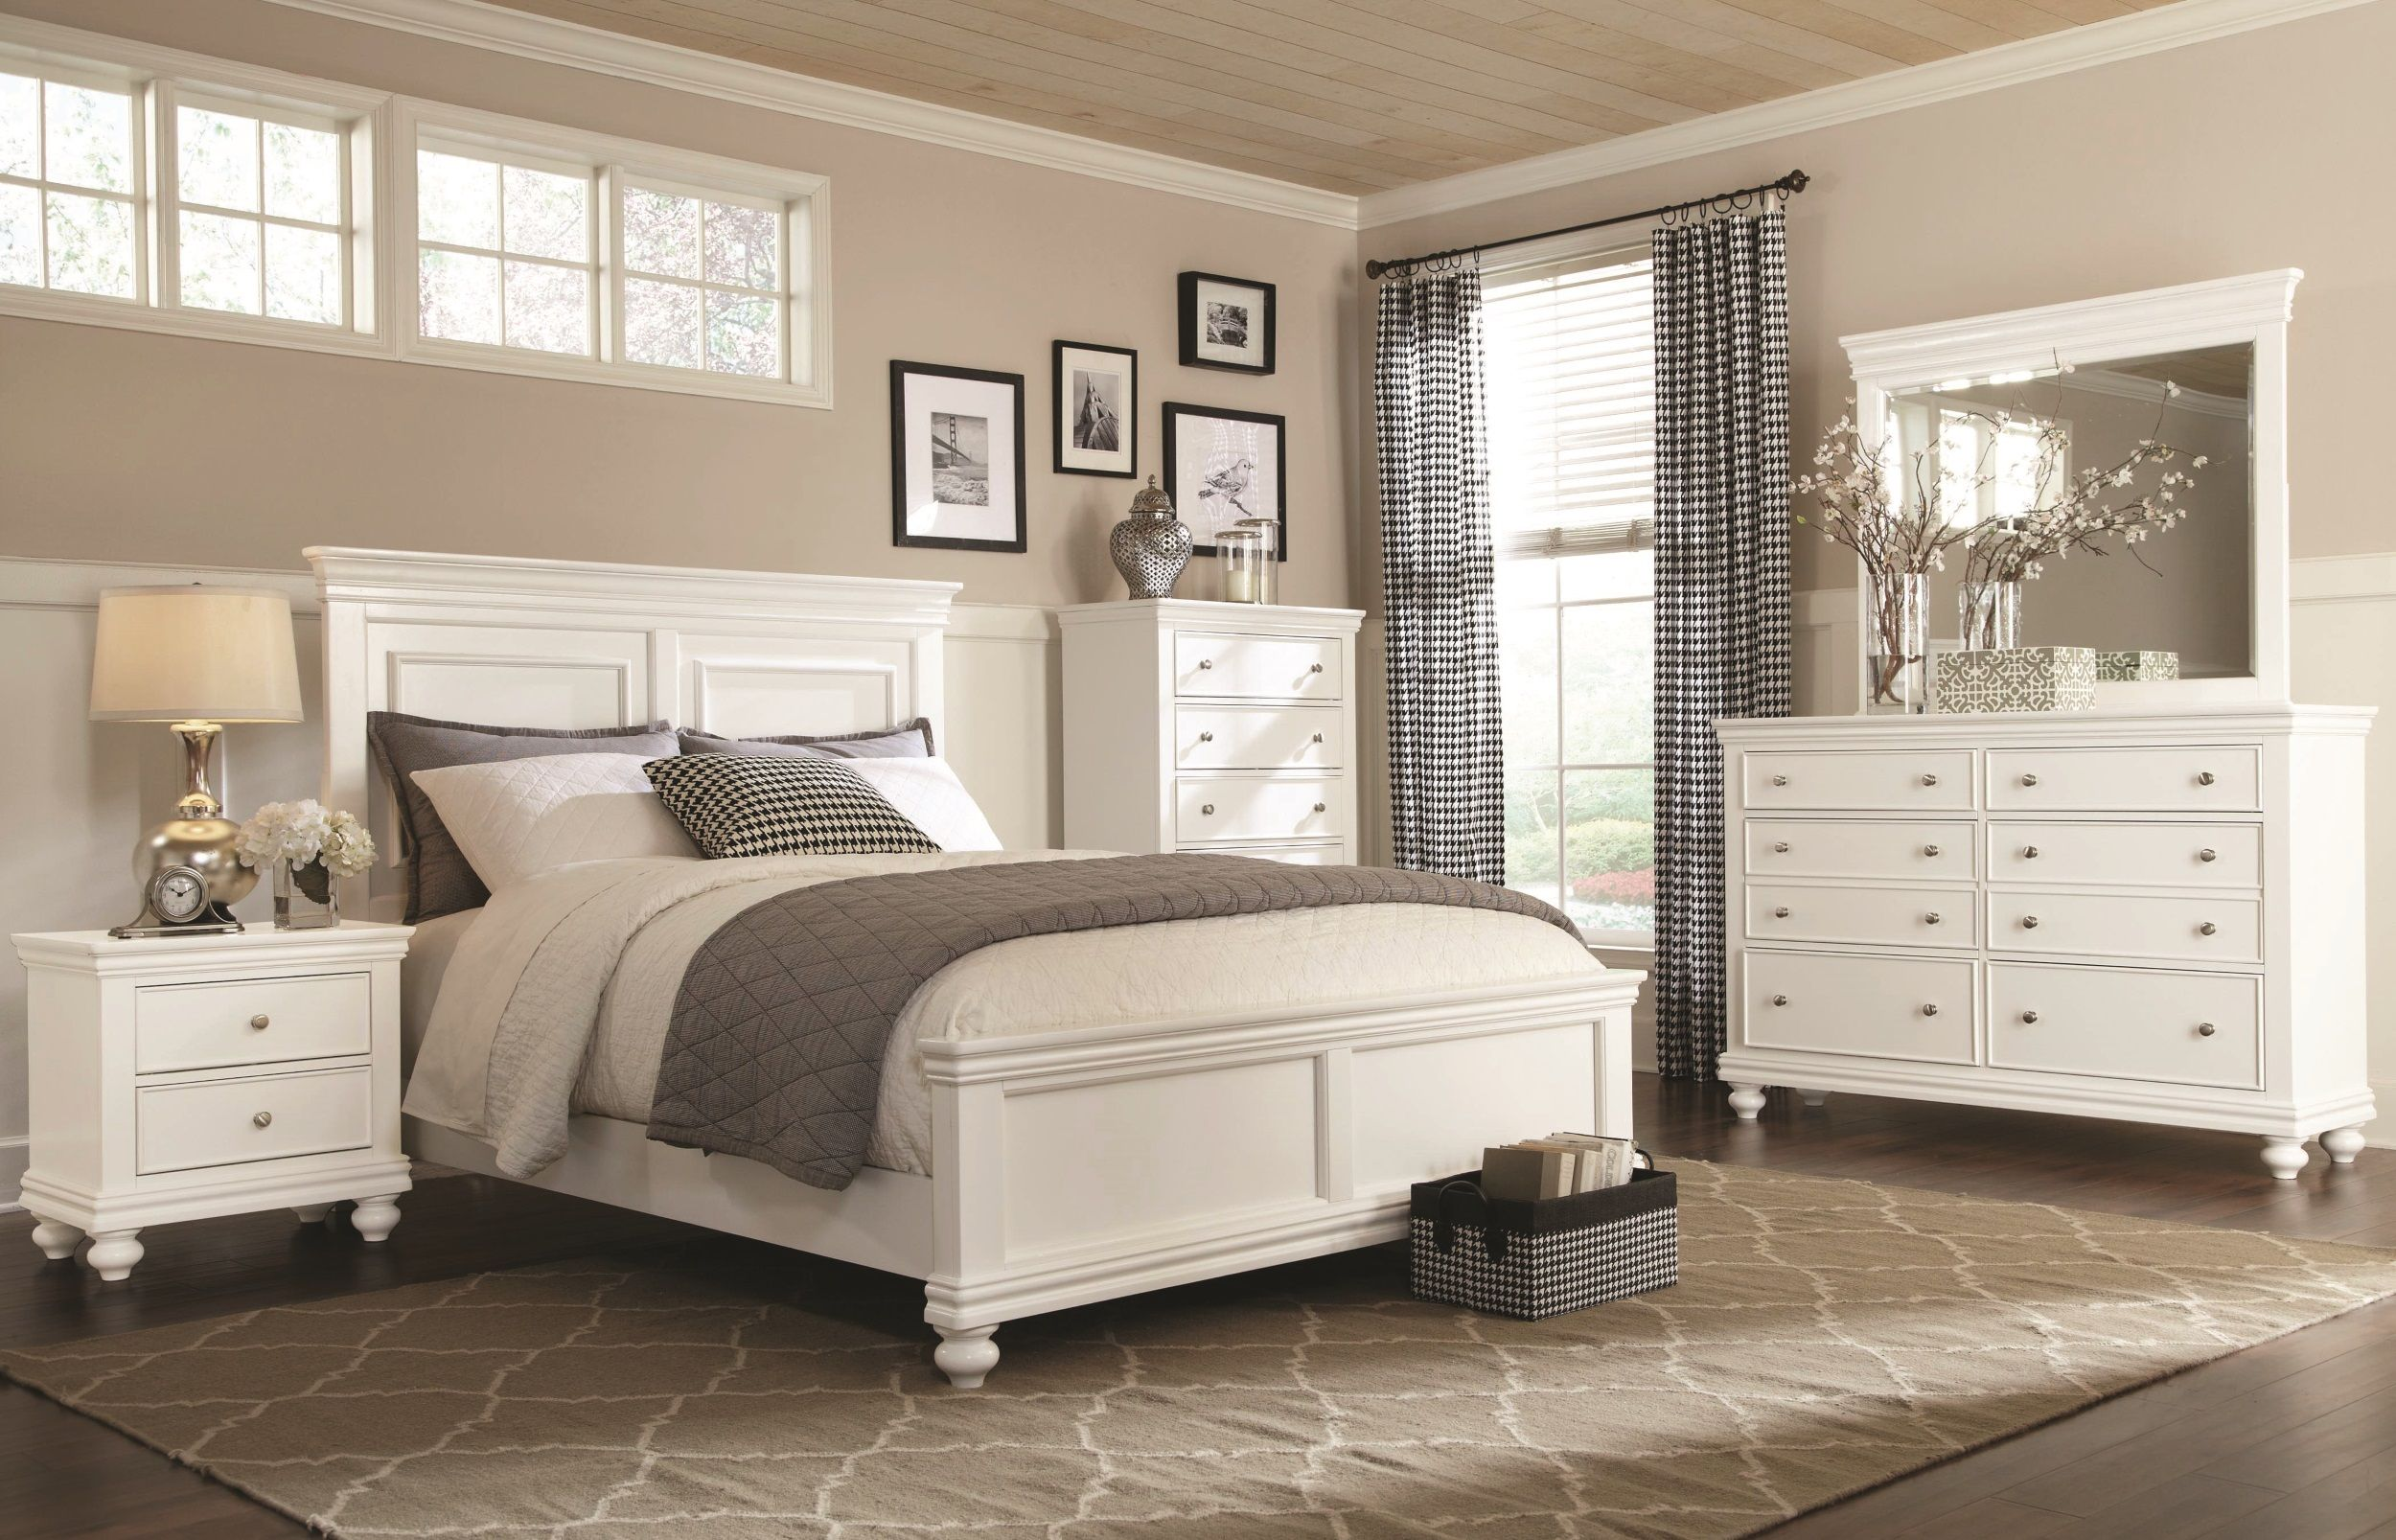 Best White 4 Piece Queen Bedroom Set Essex Home Decor King Bedroom Sets White Bedroom Set 400 x 300